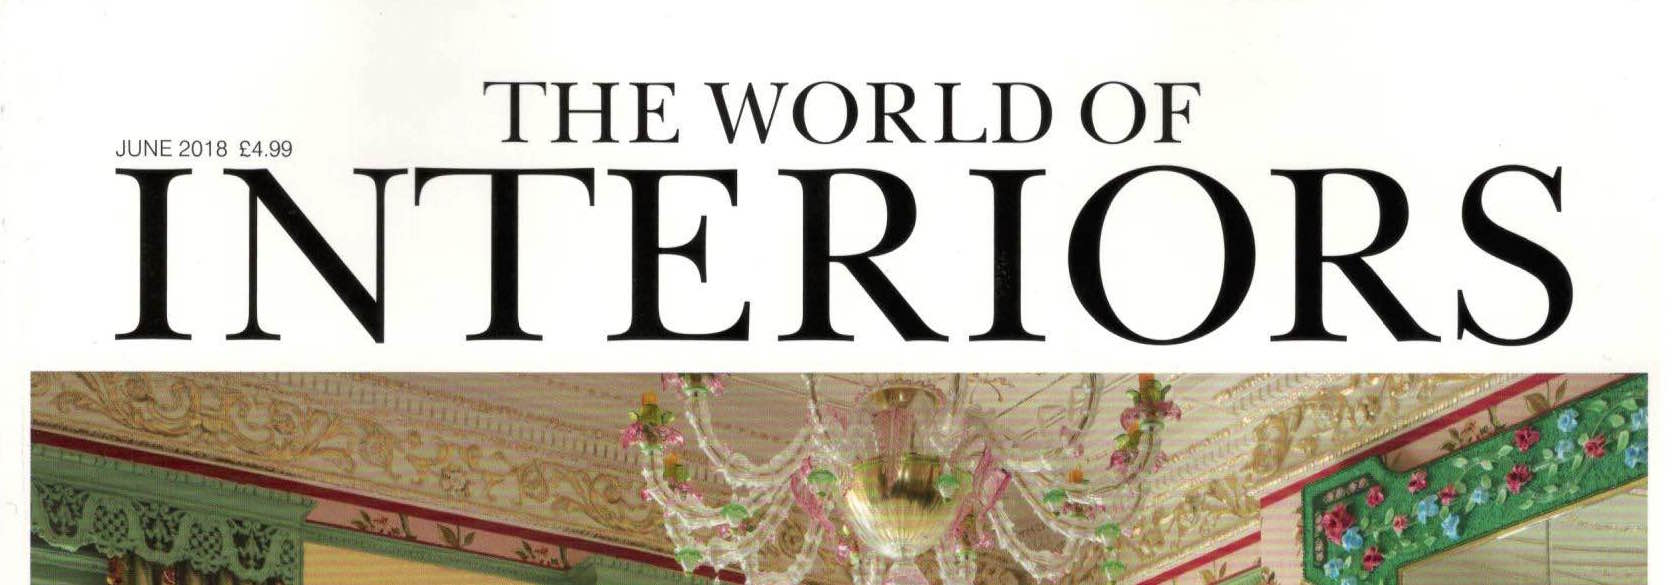 The World of Interiors, July 2018